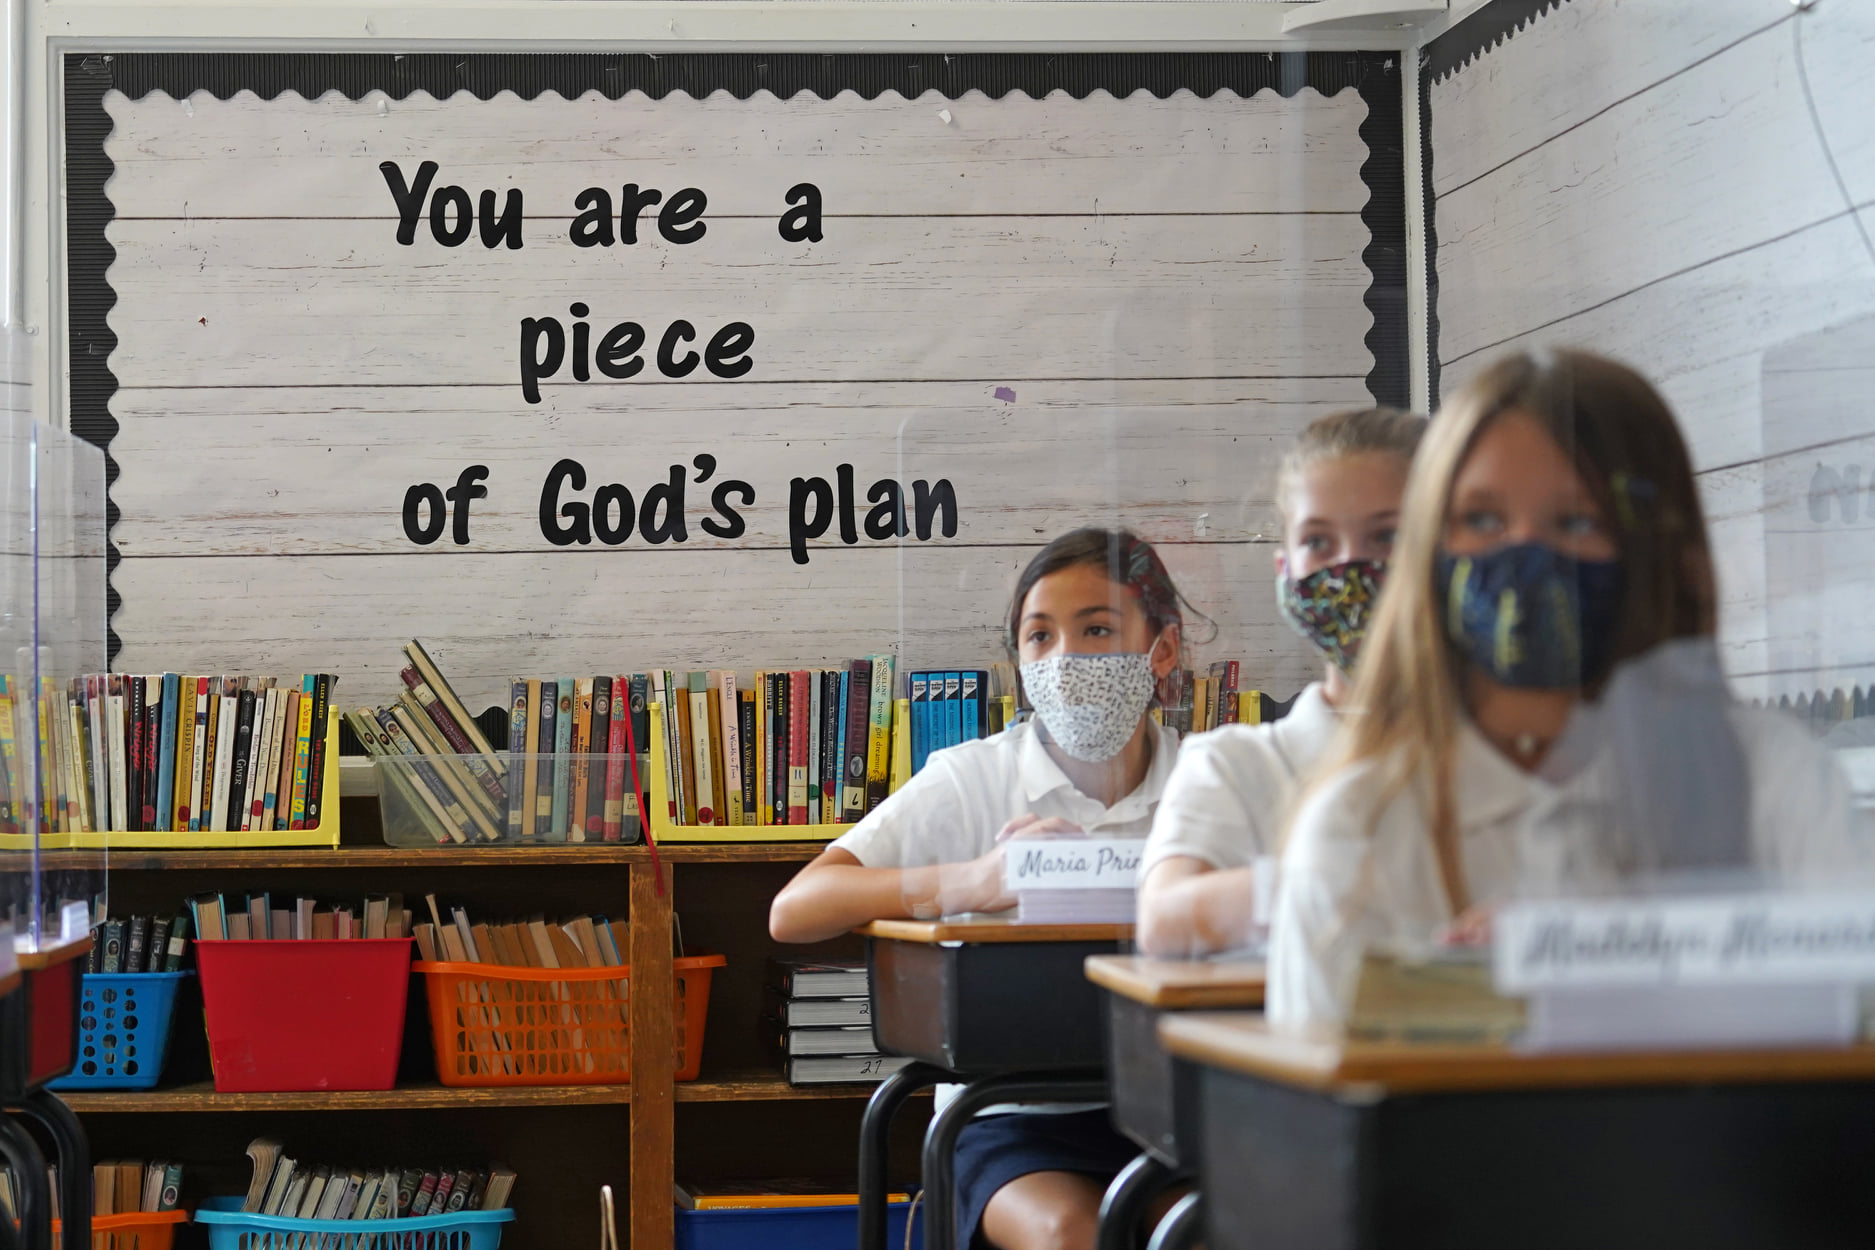 Sixth-grade students sit behind plexiglass partitions on the first day of the new school year, on September 8, 2020. Catholic schools were heralded for safety, efficiency and quality education during the pandemic. [Gregory A. Shemitz]